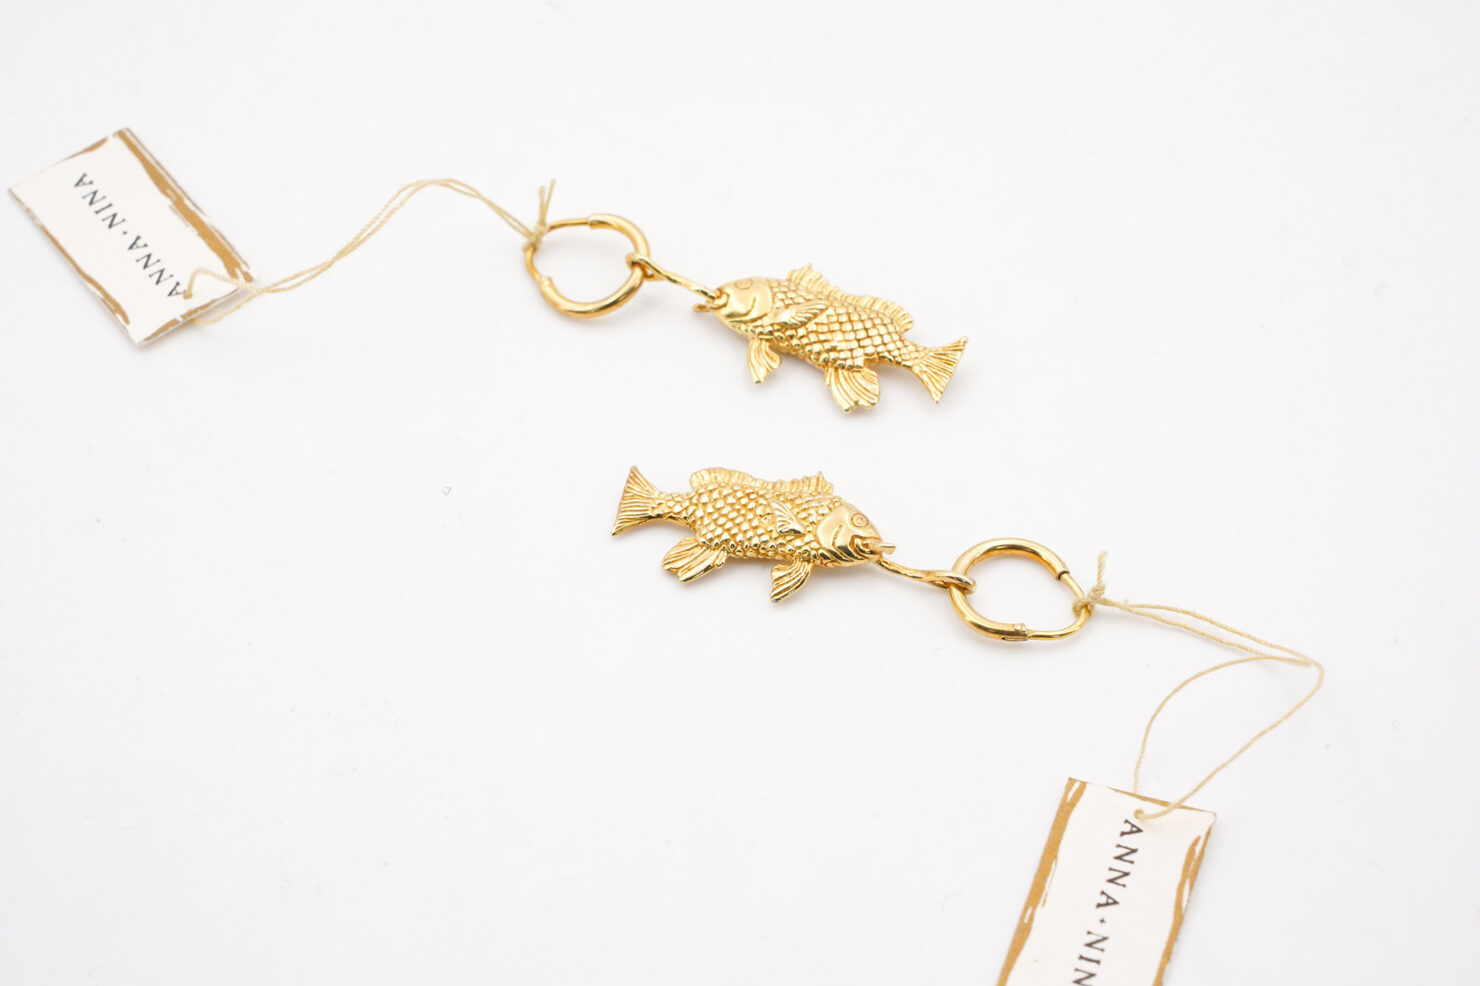 SINGLE FISH RING EARRING SILVER GOLPLATED - ANNA + NINA